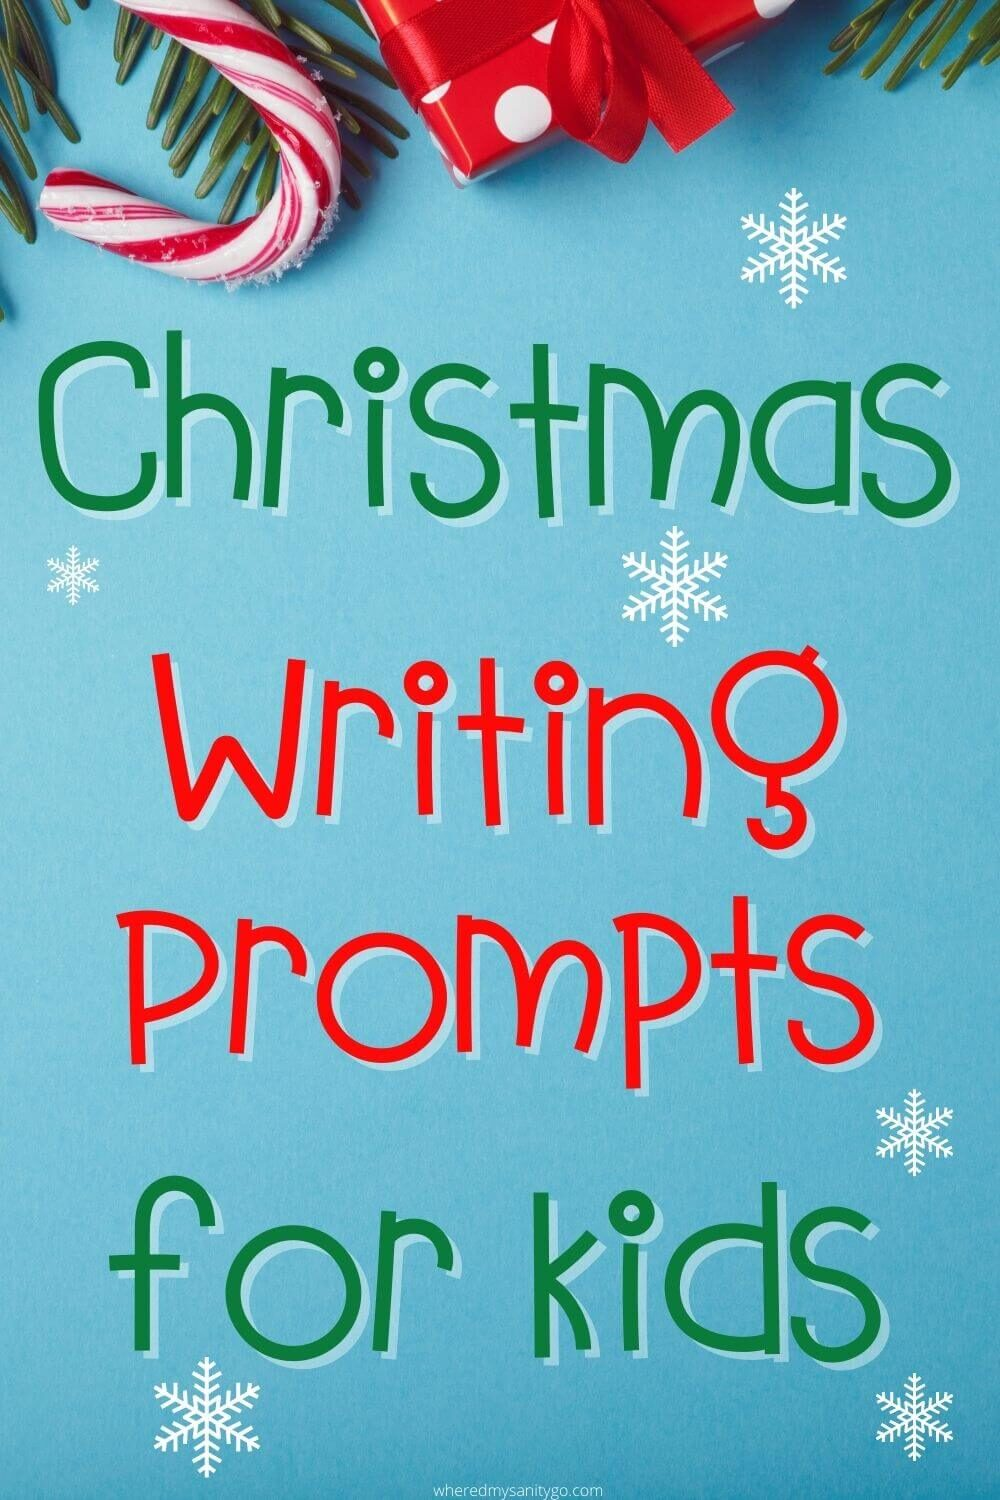 Writing Prompts for Christmas - Fun Christmas Writing Prompts for Kids